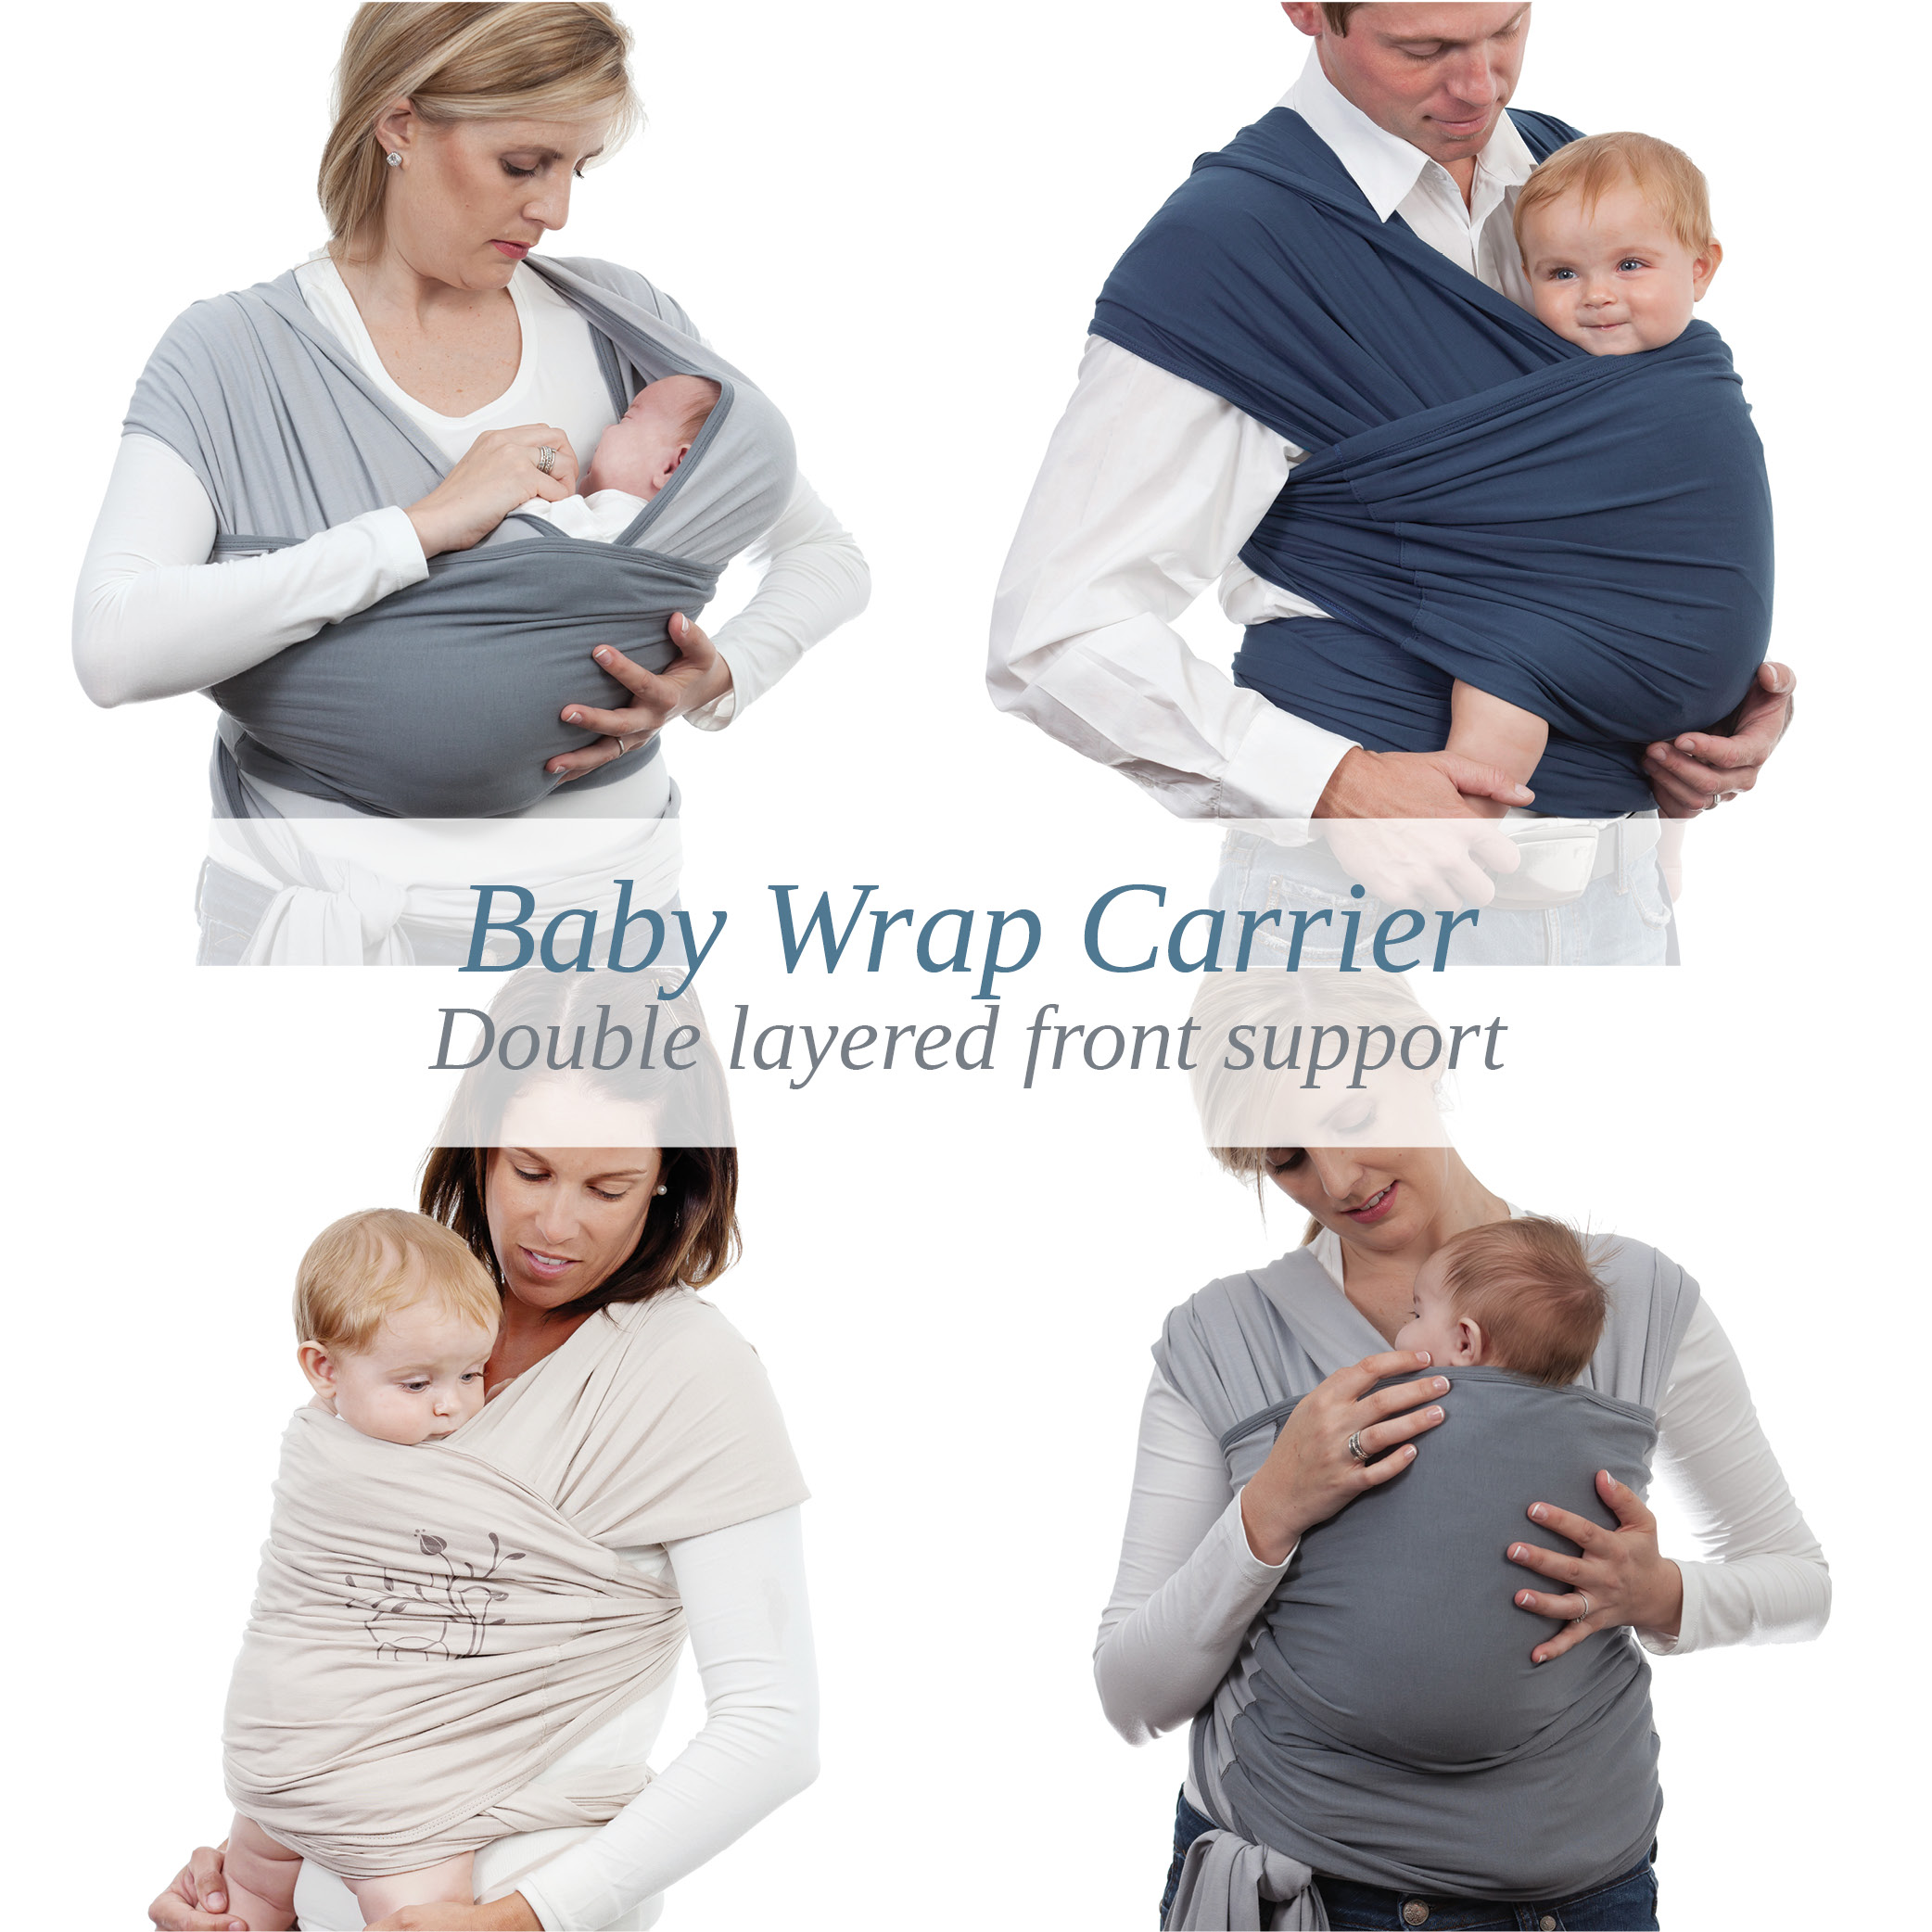 Baby Wrap Carrier Brightkids Co Za